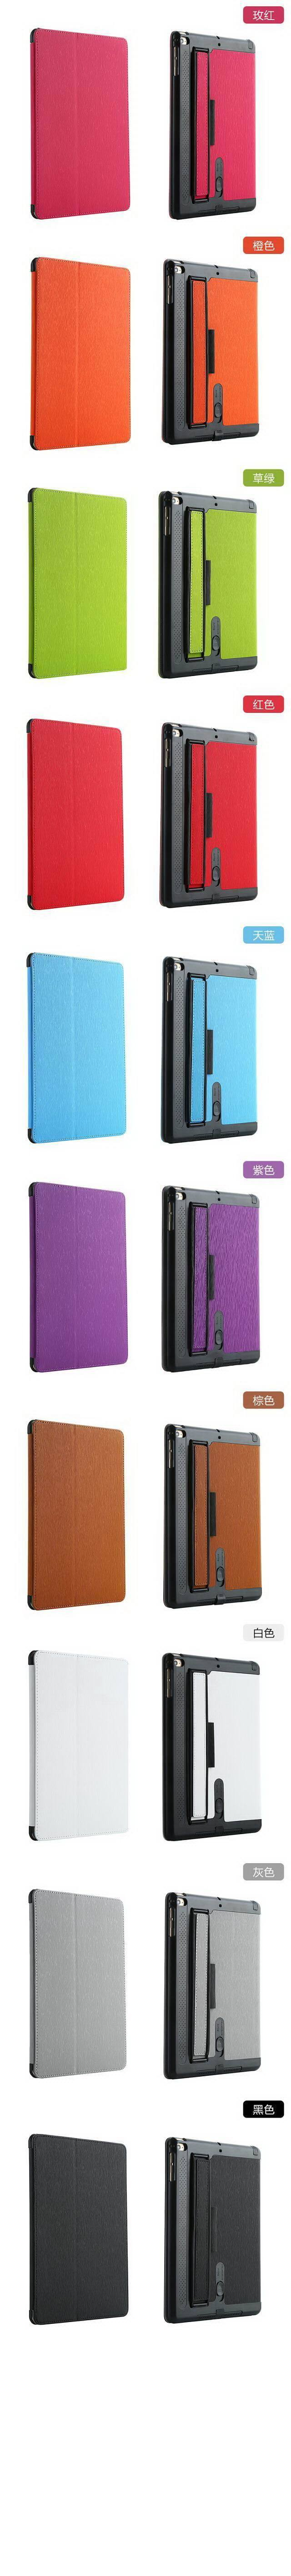 Case with handheld for Apple iPad Air 1, iPad Air 2, Apple iPad 2, iPad 3, iPad 4, Apple iPad Mini 1, iPad Mini 2, iPad Mini 3, iPad Mini 4